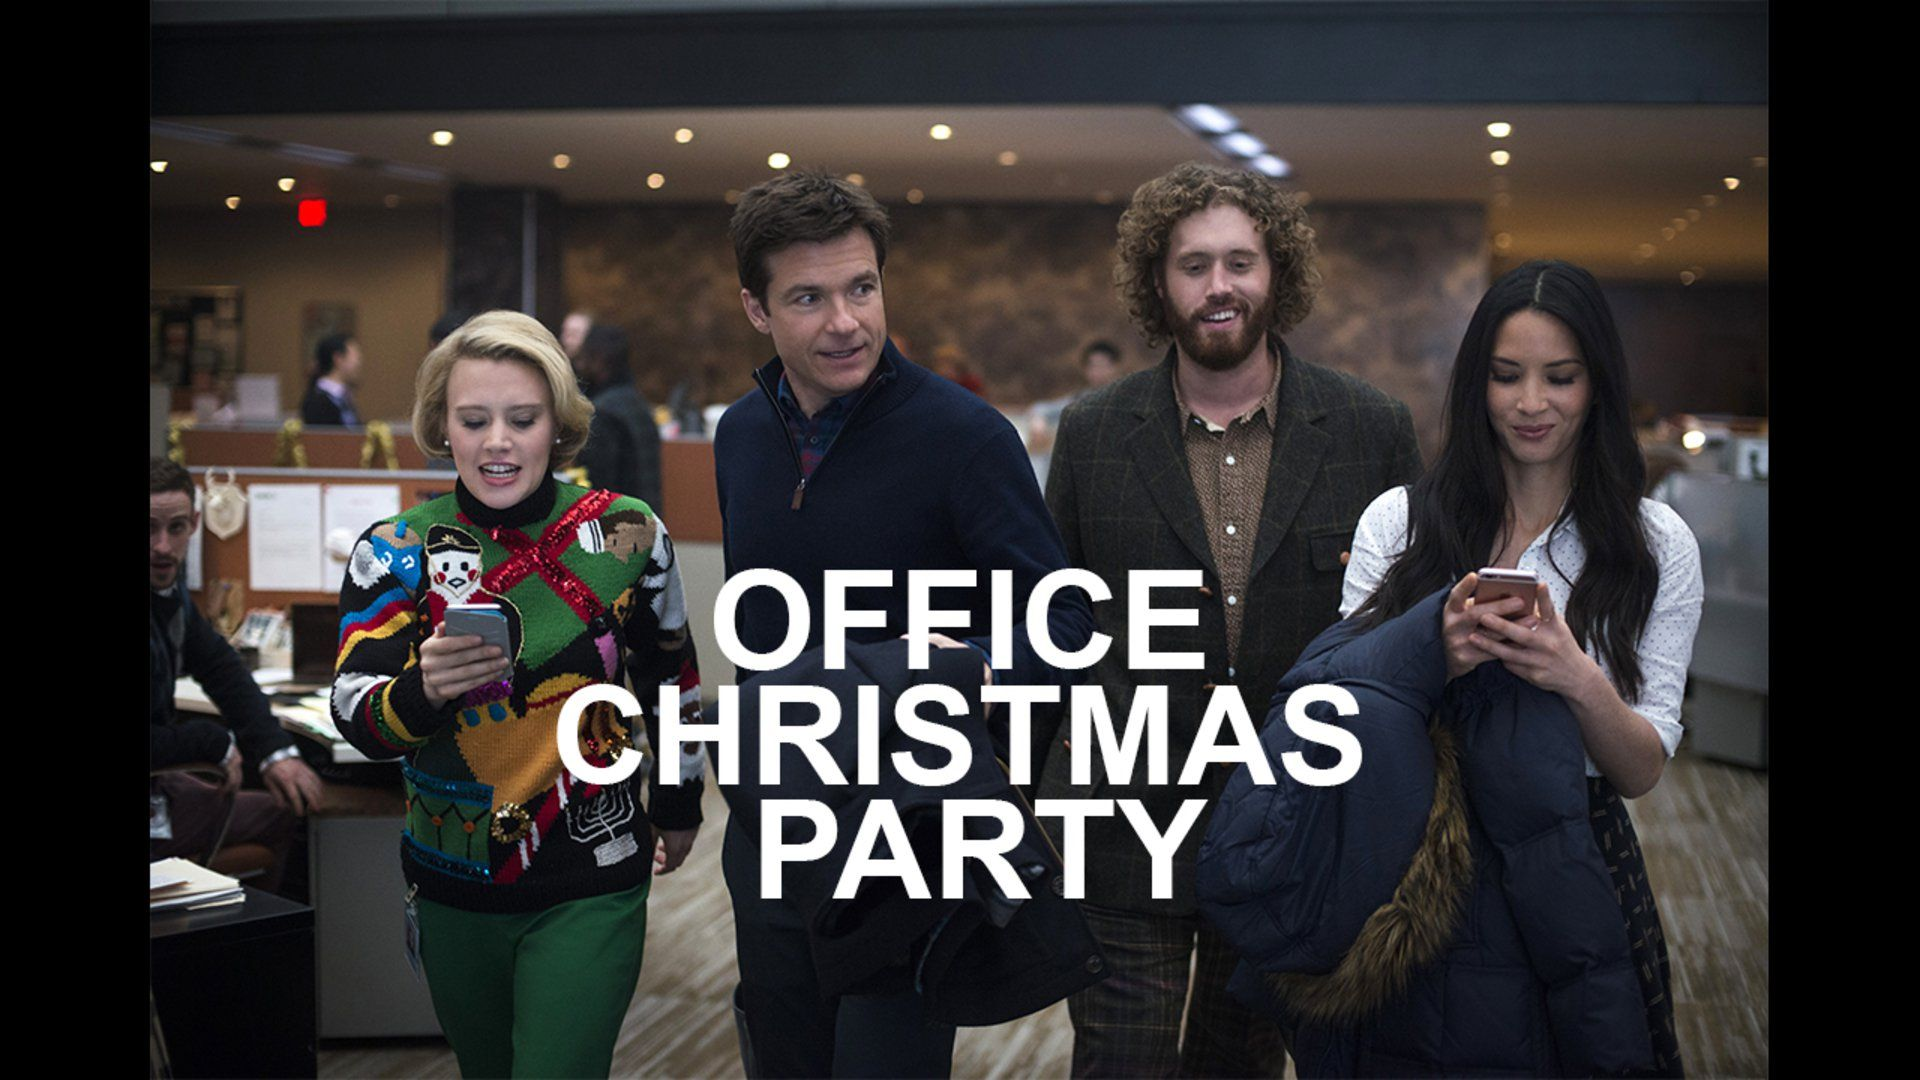 Watch Movie Office Christmas Party 2016 Full Online Free